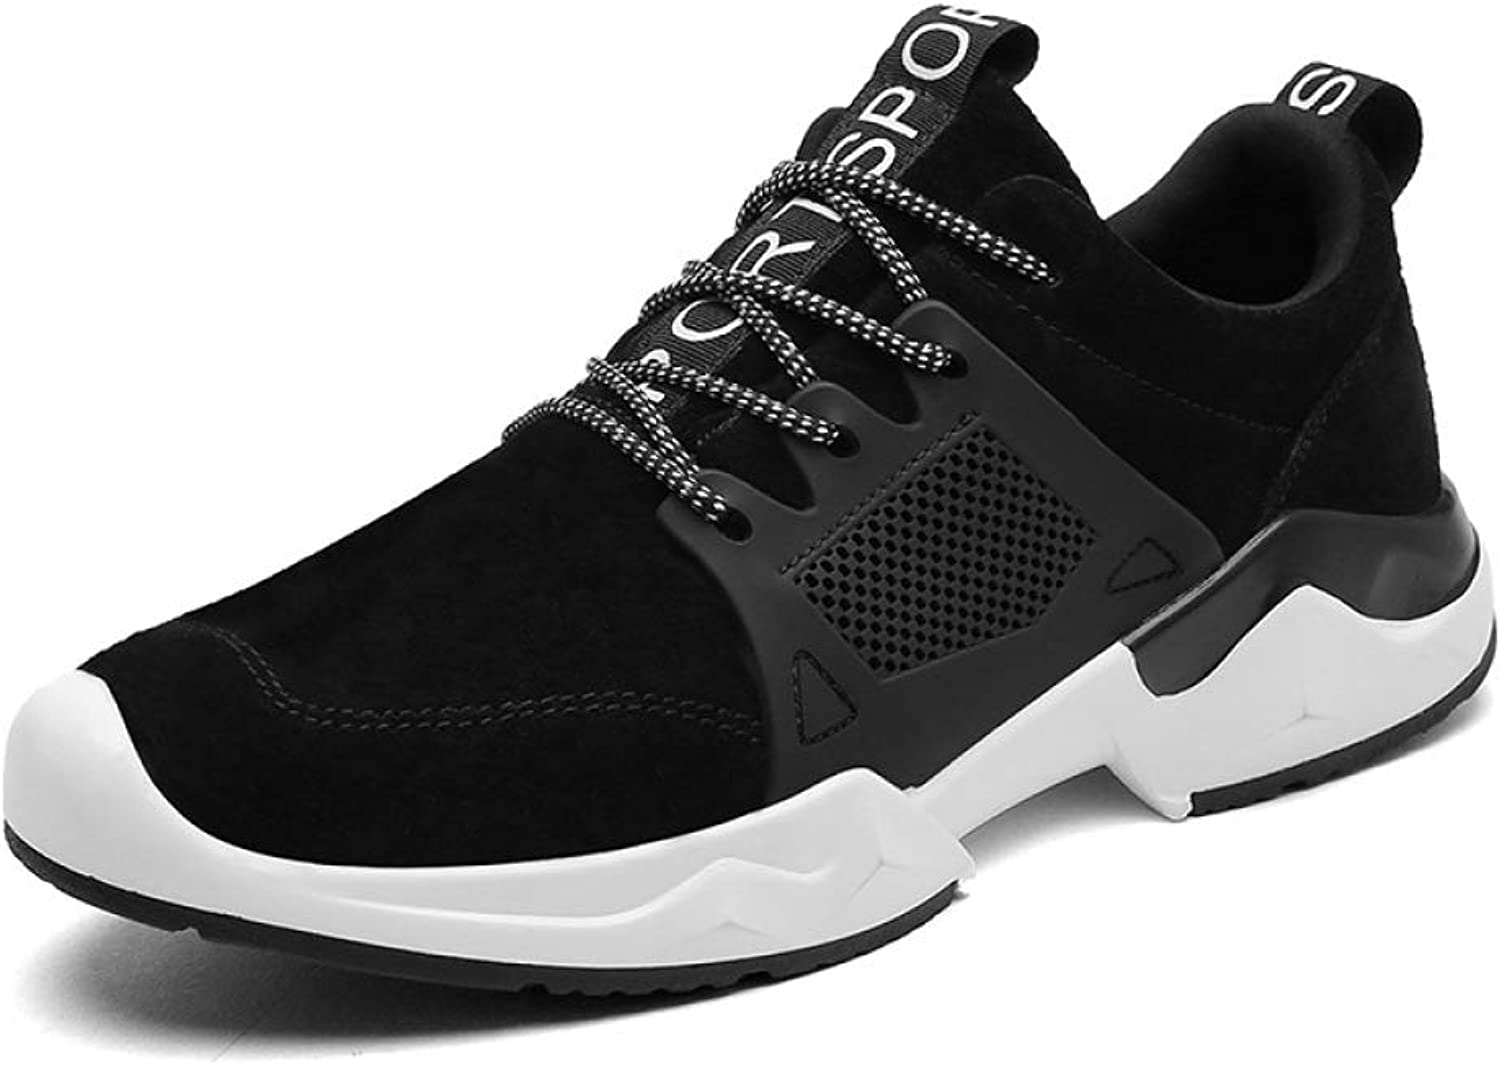 Mens Casual Running shoes Leather Trainers Warm Lining Winter Outdoor Breathable Sneakers Gym Sports Walking shoes